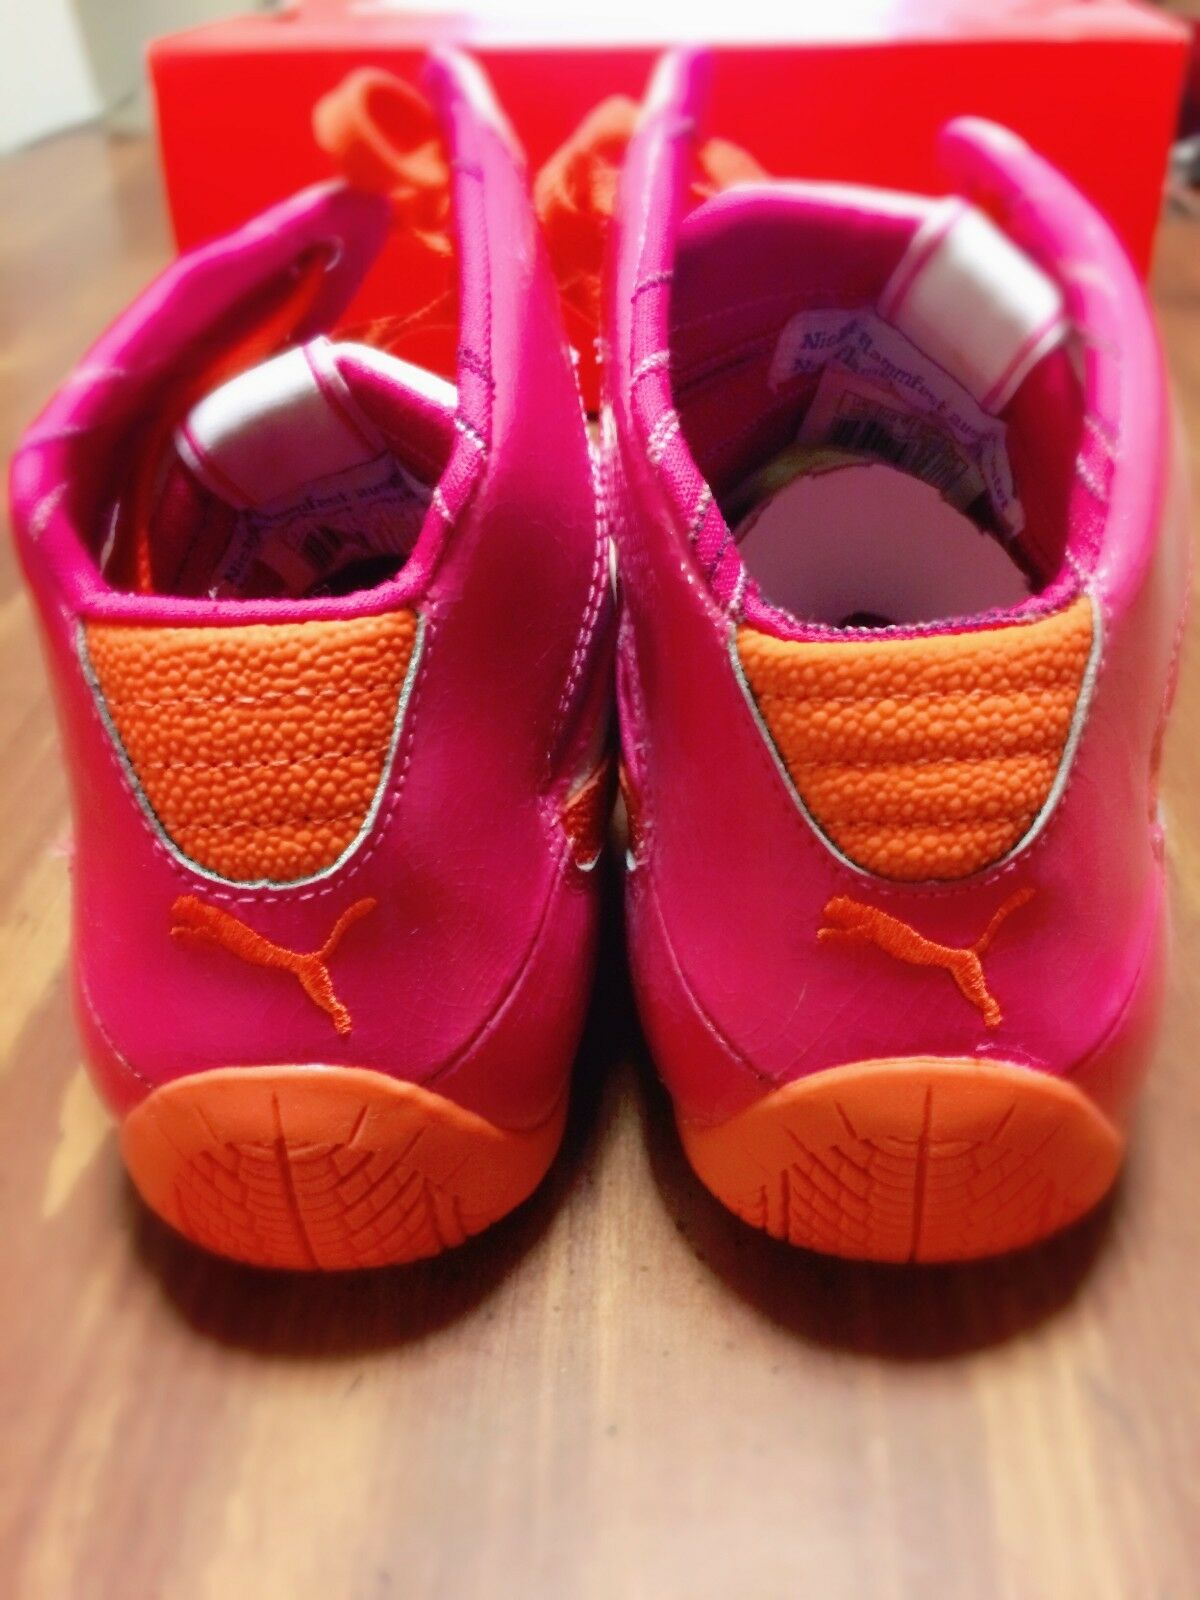 Puma Speed Cat 2.9 Nacar Driving shoes Sneakers Sneakers Sneakers Breakdance Pink Hip-Hop a9ed5d